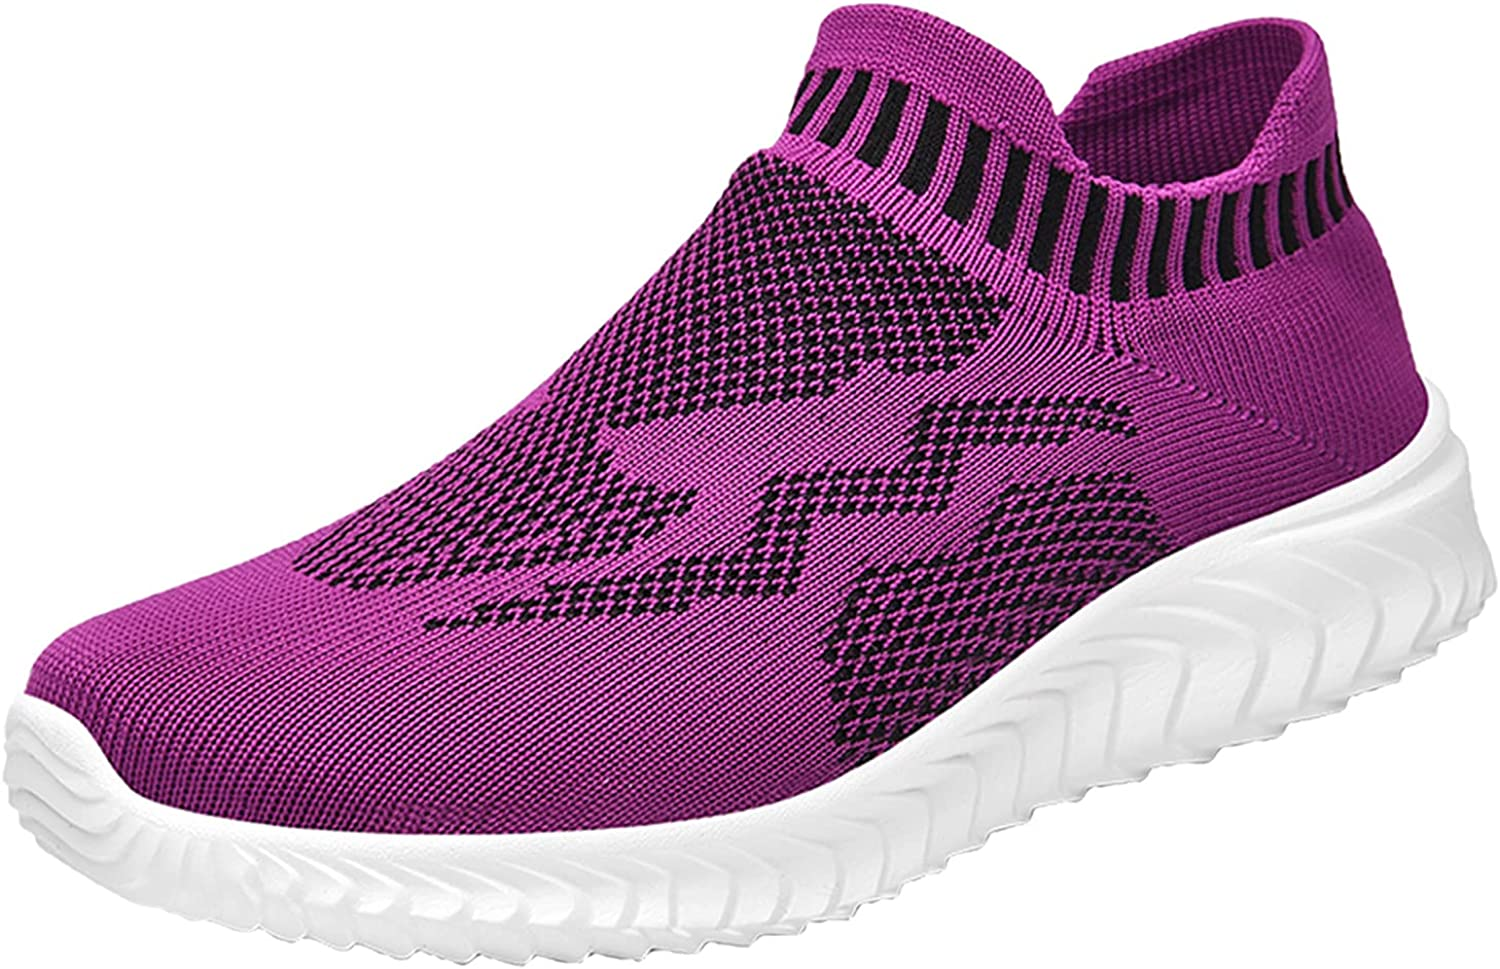 FADK Womens Slip On Sneakers Mesh Breathable Comfortable Casual Walking Shoes